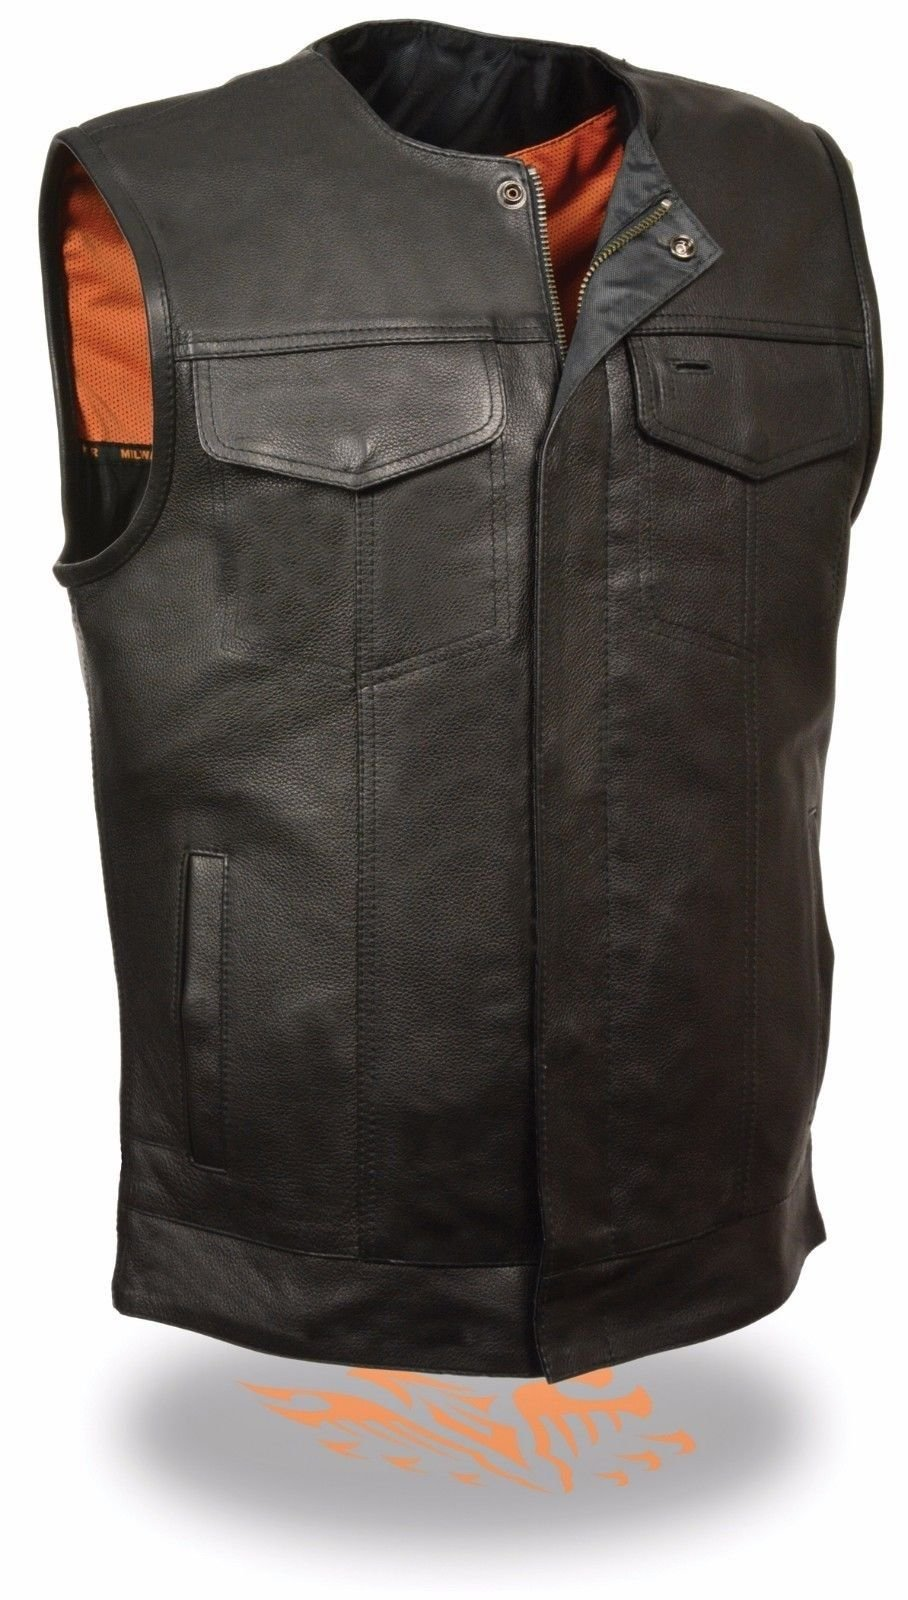 Milwaukee MEN'S MOTORCYCLE SON OF ANARCHY STYLE BUTTER SOFT LEATHER VEST W/O COLLAR NEW (XL Regular) by Milwaukee